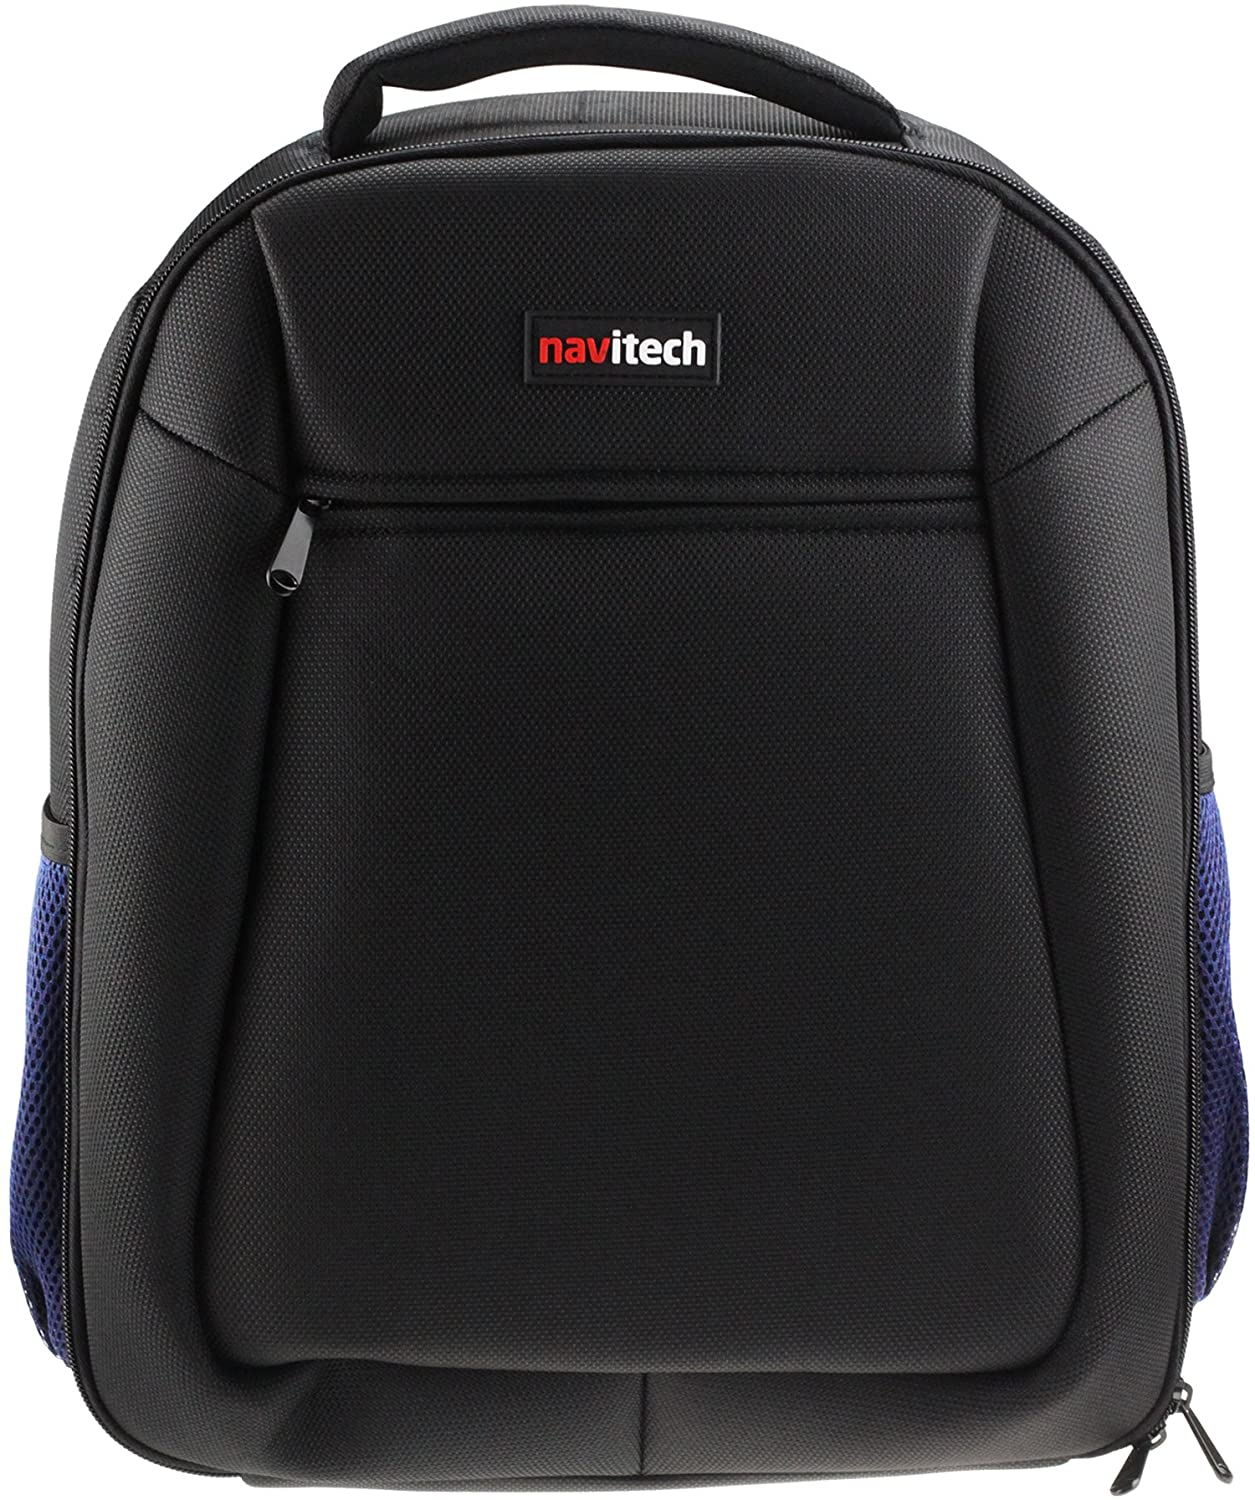 Navitech Black Durable Portable Mobile Scanner Carry Case/Rucksack Backpack Compatible with The Smartoffice Ps283